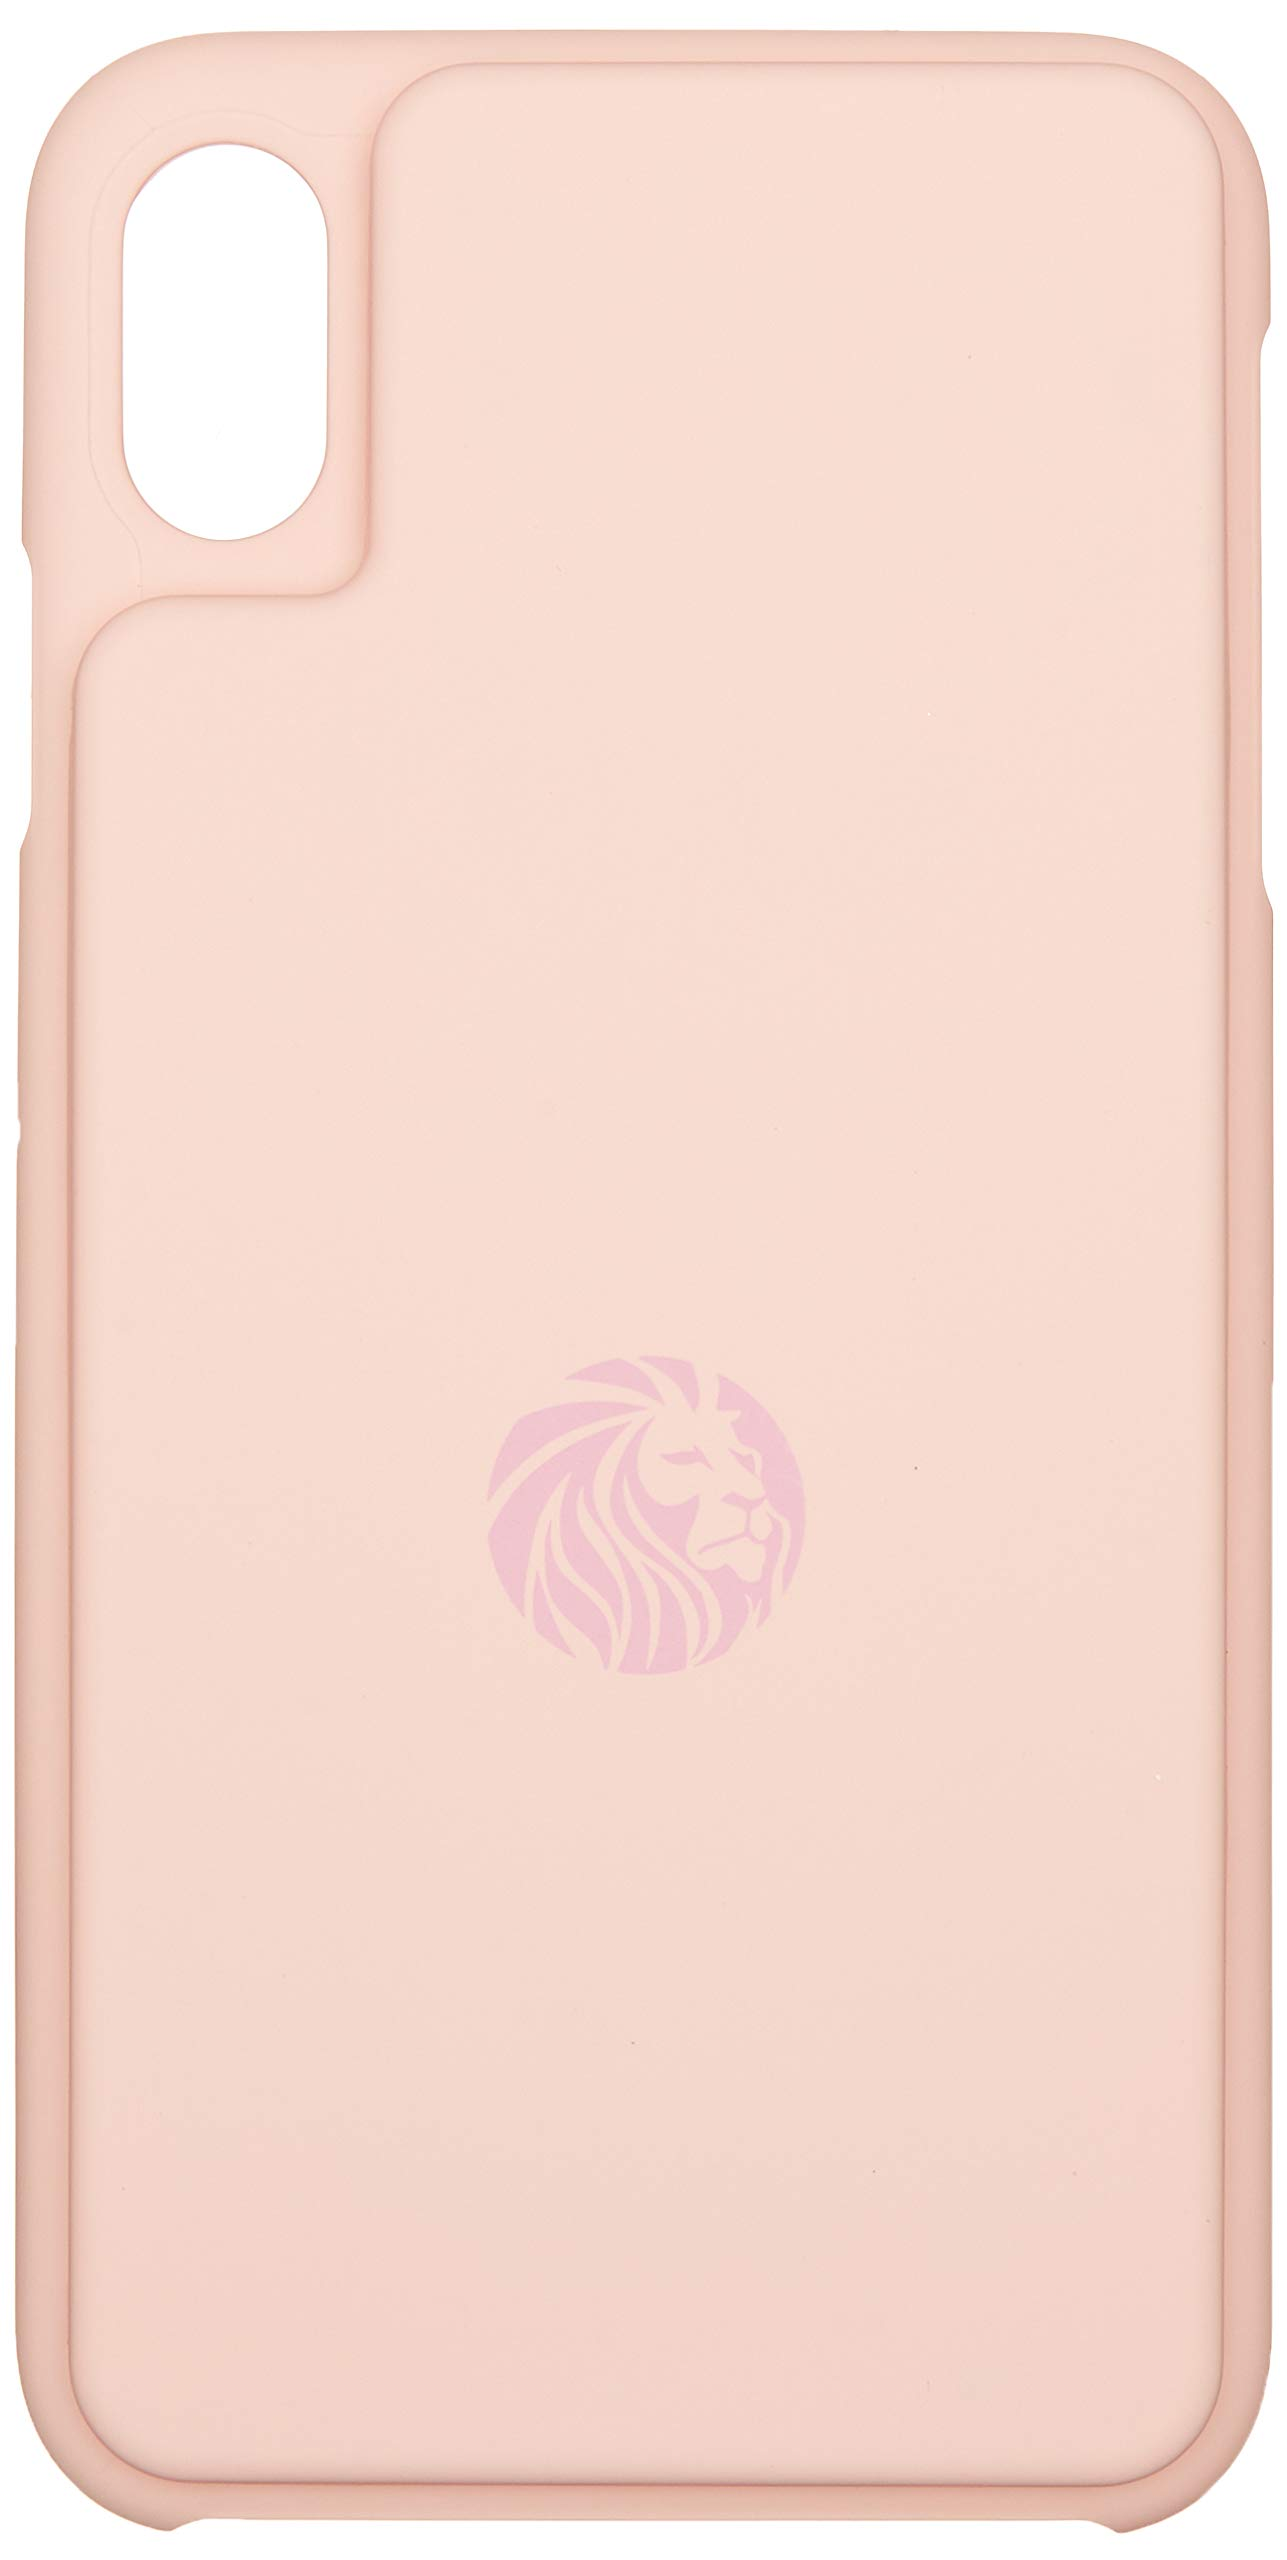 Lioned Fitcase Pink for iPhone Xs Max, Food Scale in an iPhone case, Rechargeable Battery by USB c Cable, Track Your macros Where You are, Even on The go, and Protect Your Smartphone